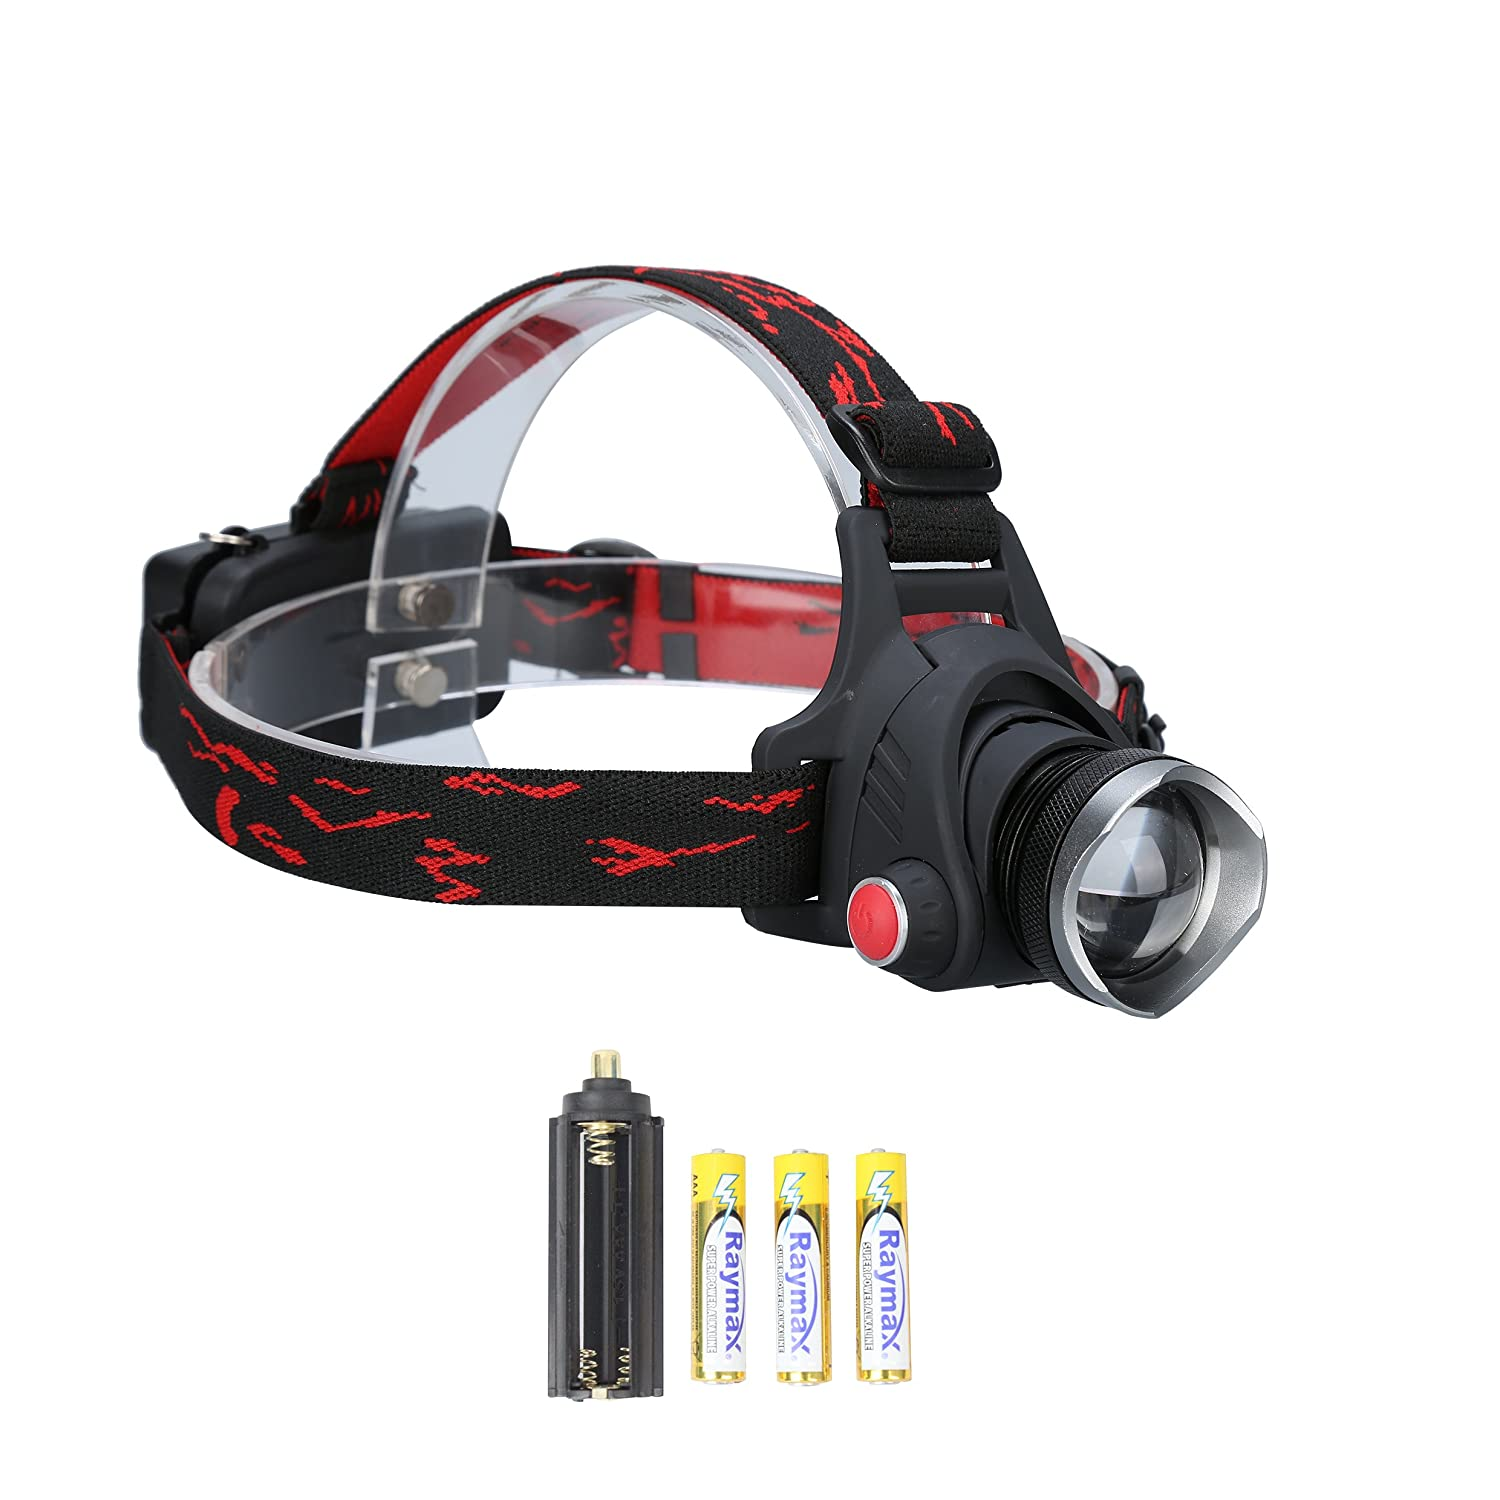 Durapower Headlamp Super Bright 2 Modes Led Headlamp with Zoomable Focusing and Adjustable Lighting Angle and Water Resistant Function Include 3 AAA Batteries Luckibuy Imp&Exp AM17-1502-HL-N